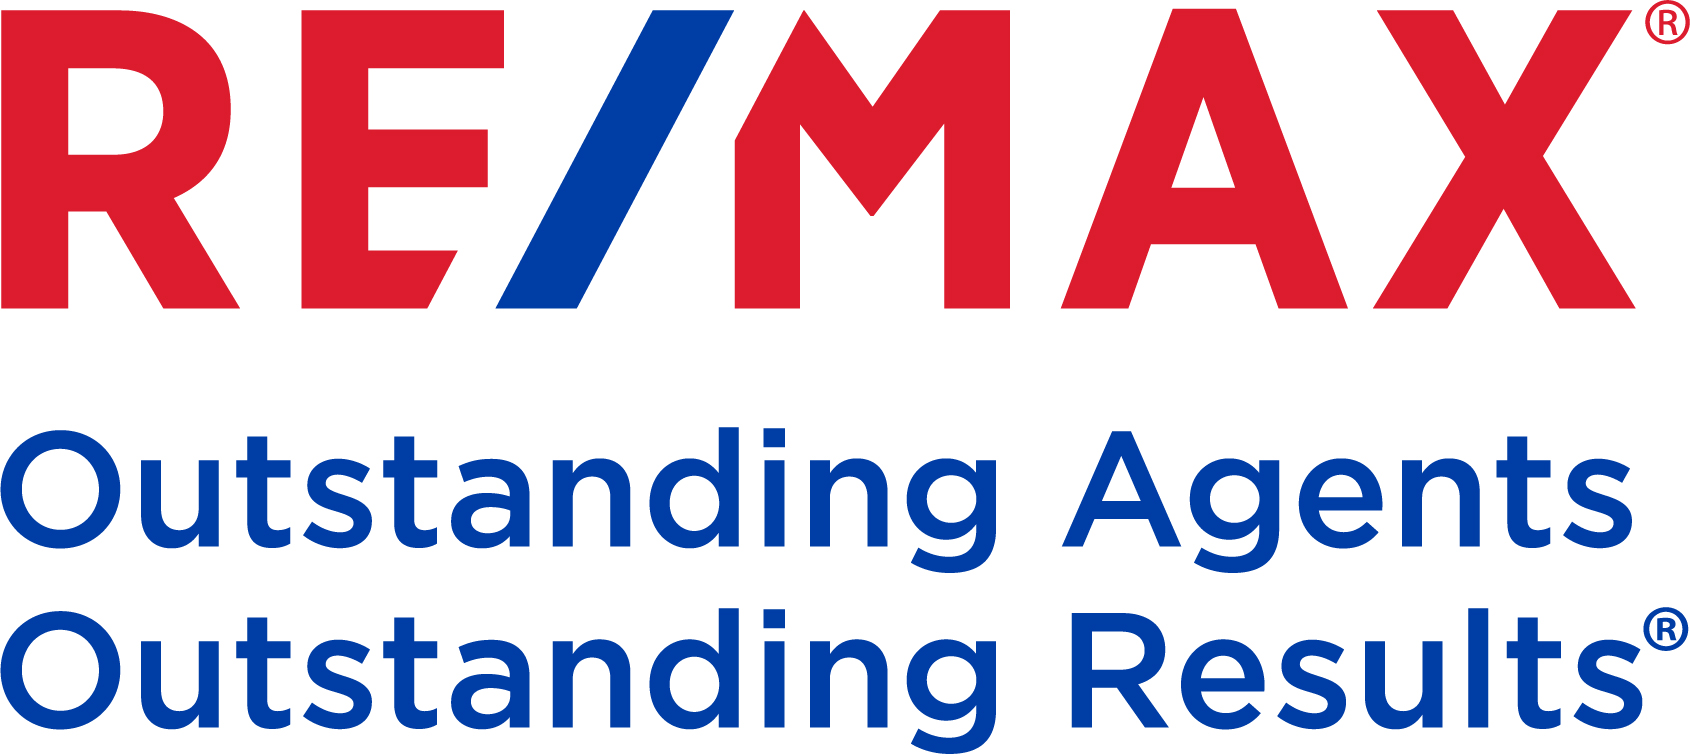 Best Tampa Real Estate Agent - REMAX